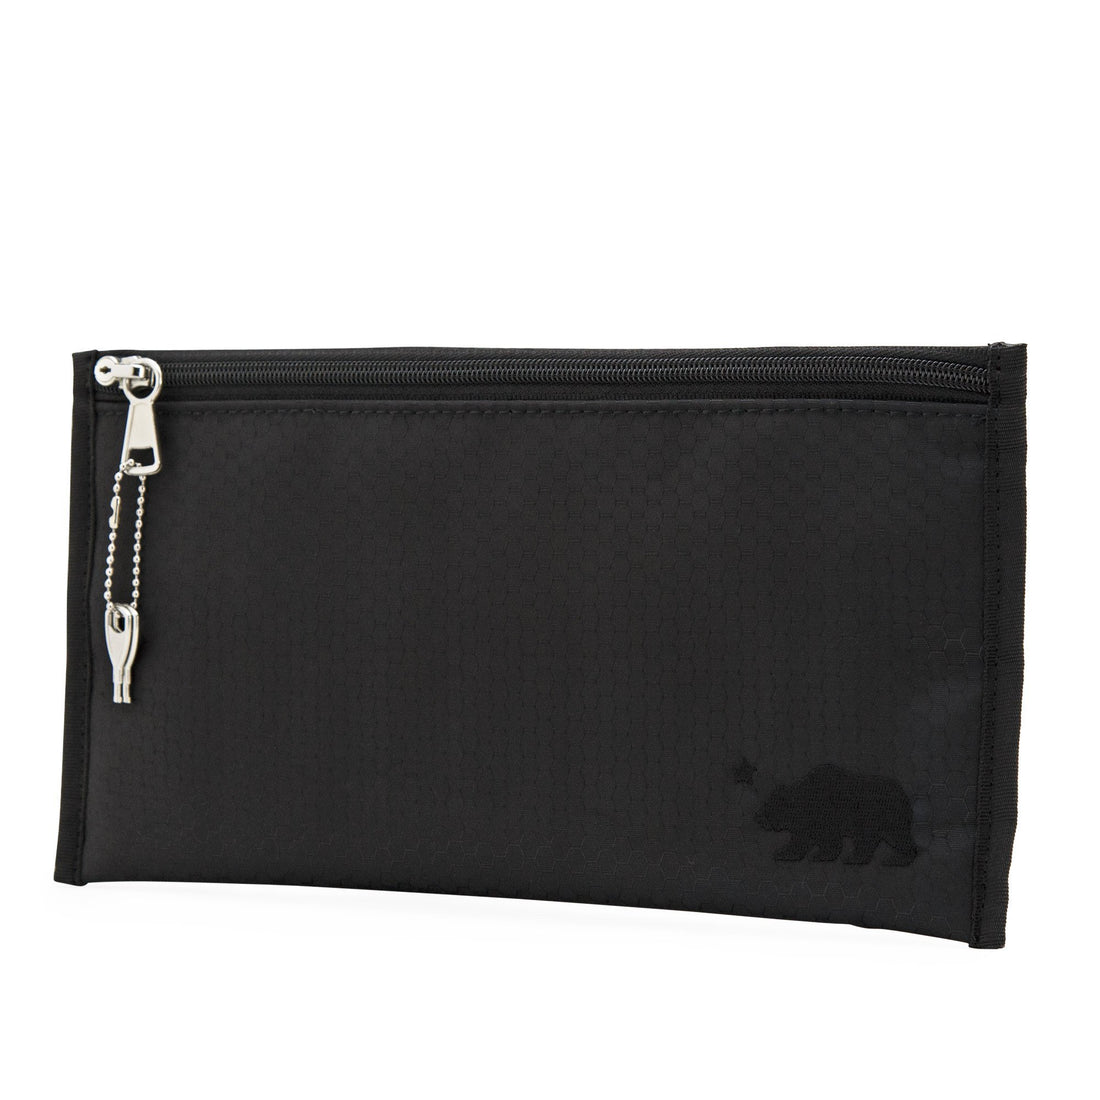 Cali Bags 11x6in Smell Proof Pouch w/Locking Zipper - 420 Science - The most trusted online smoke shop.